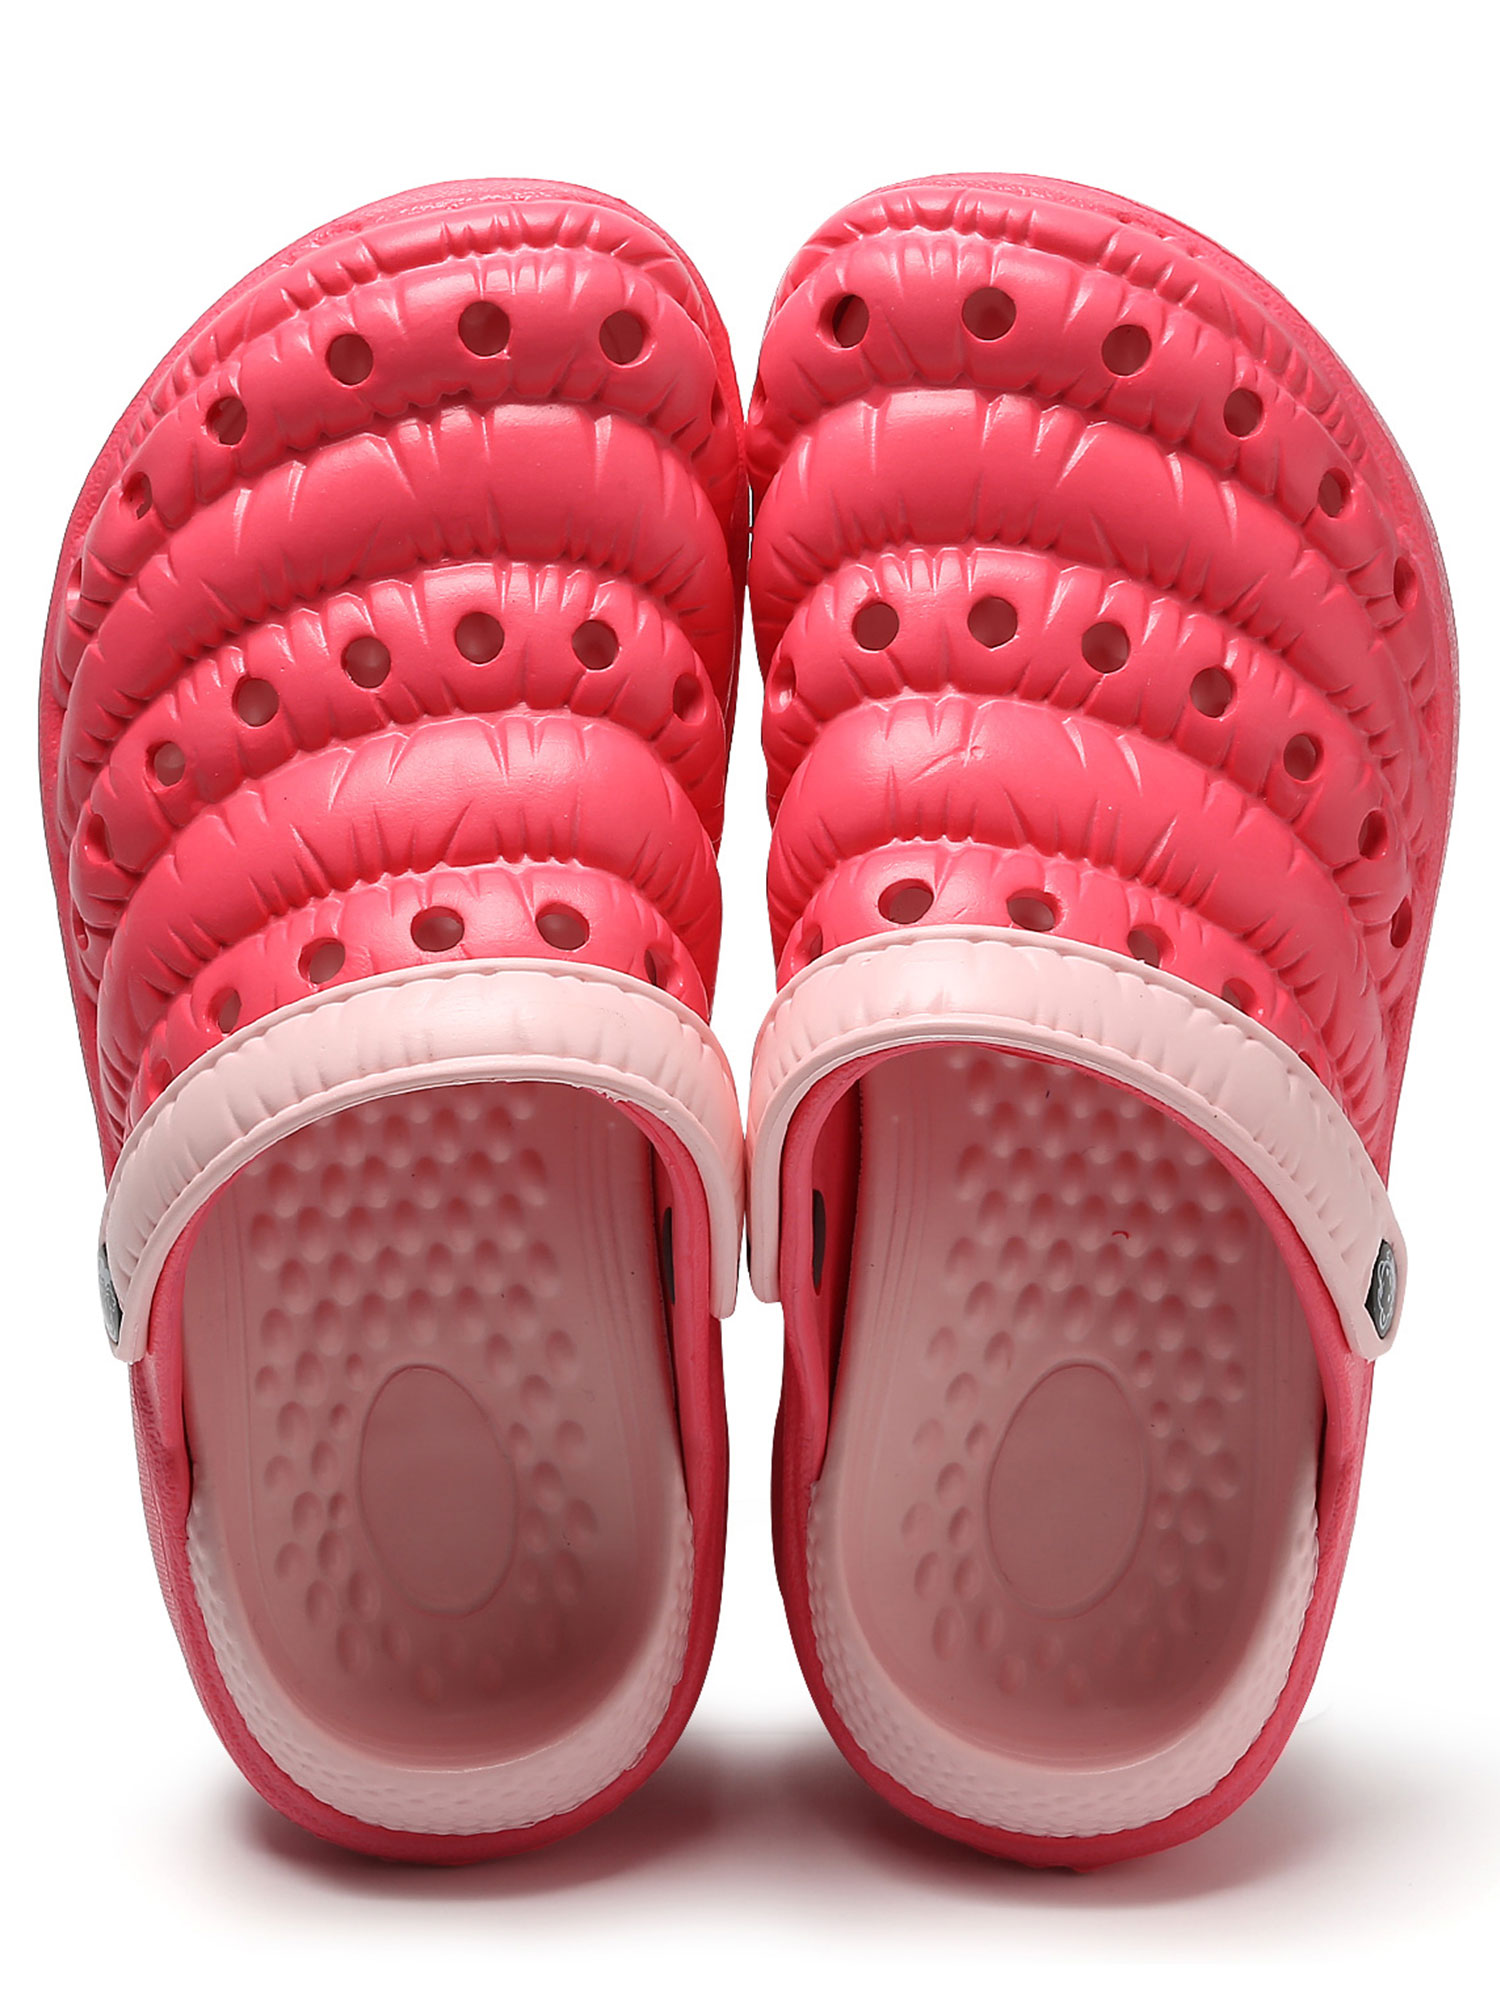 No Prob Llama Summer Slippers Pool Slider Sandals for Mens Womens and Kids Indoor /& Outdoor